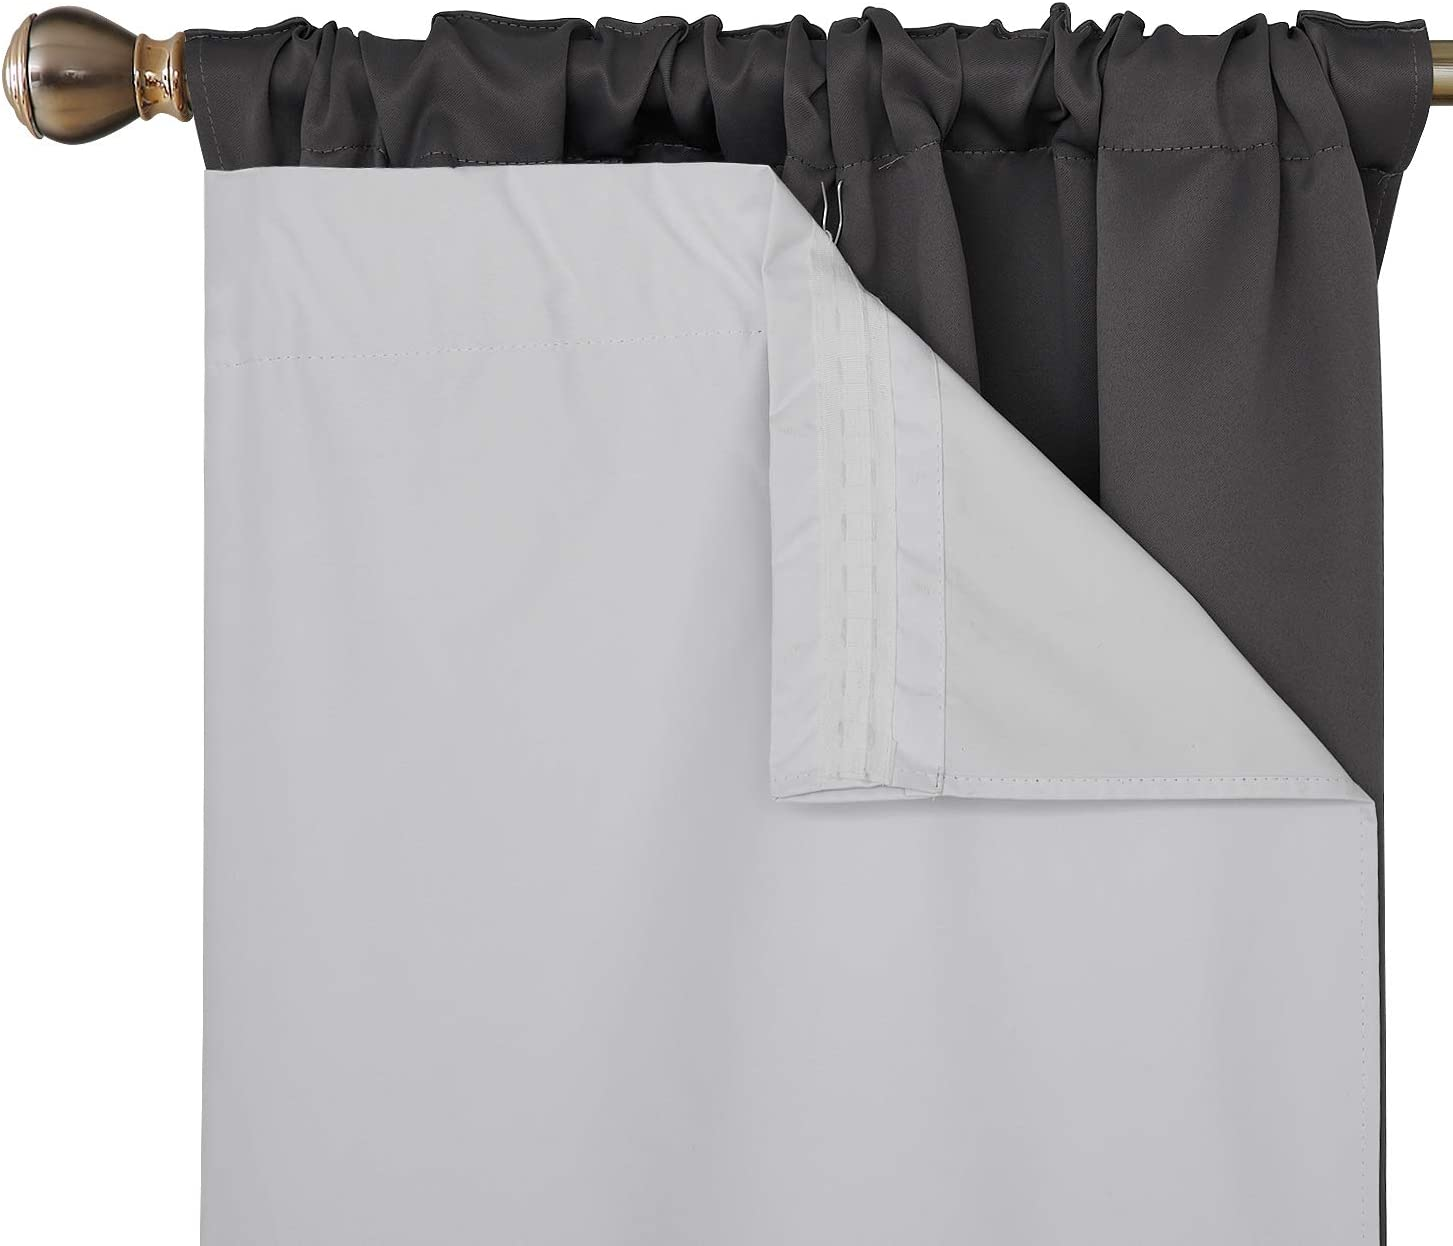 Deconovo Heavy Special price for a limited time Microfiber Rod Pocket wit Ranking TOP15 Liners Blackout Curtain